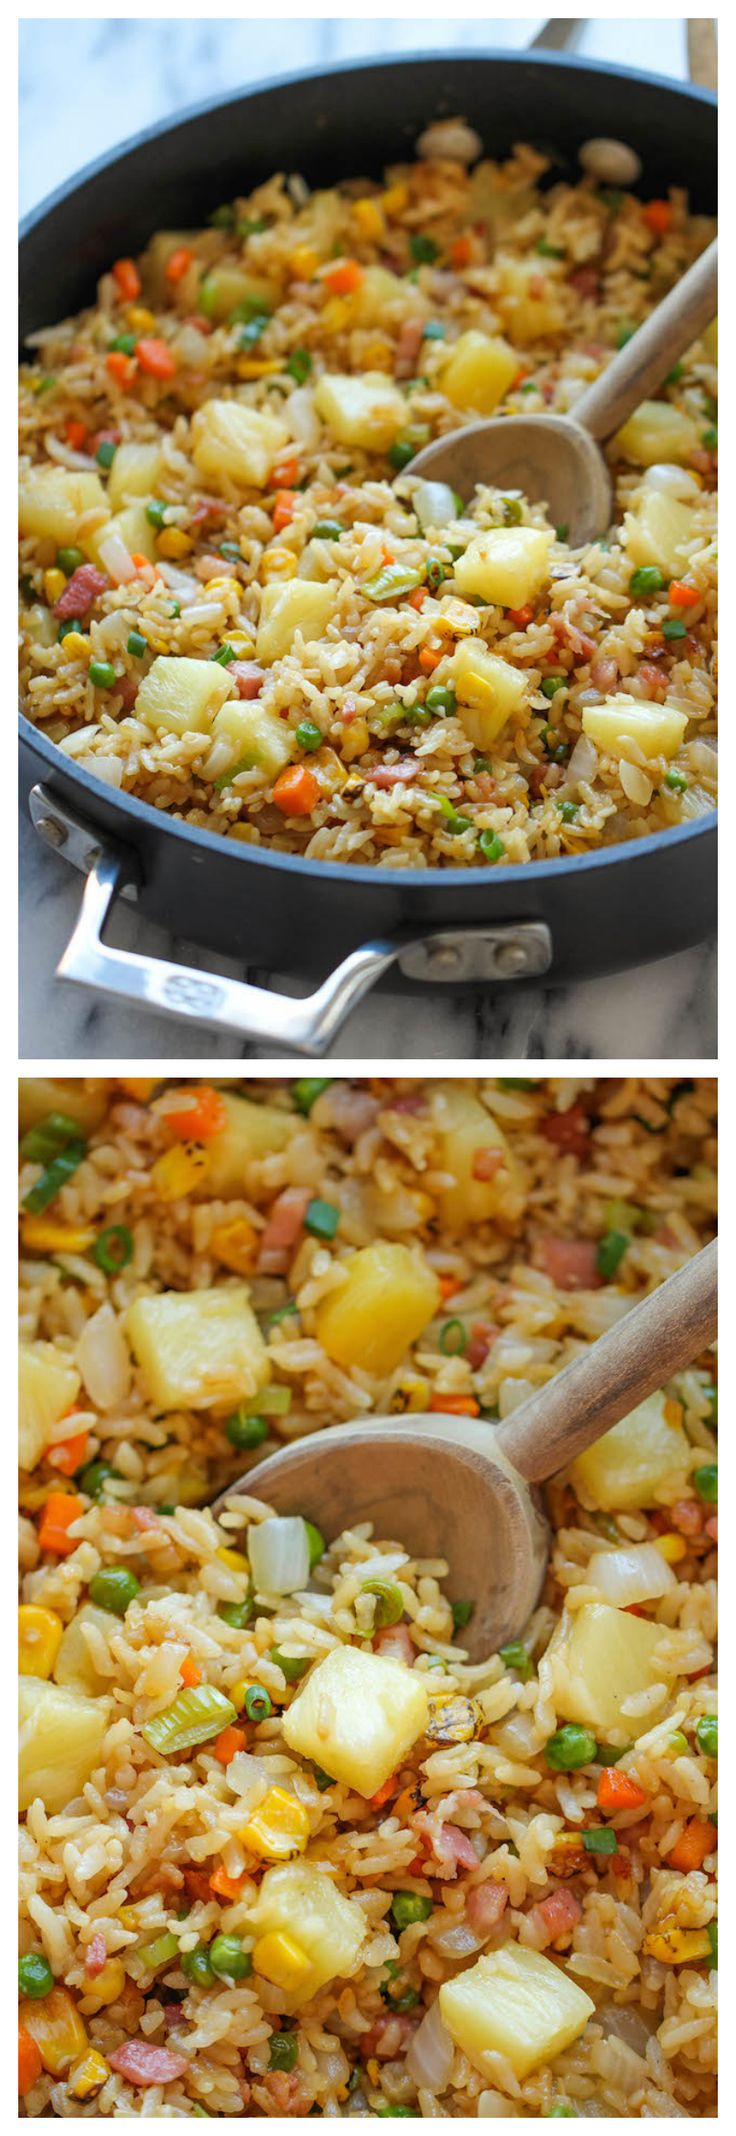 Pineapple Fried Rice - A quick and easy weeknight meal that's so much cheaper, tastier and healthier than take-out!